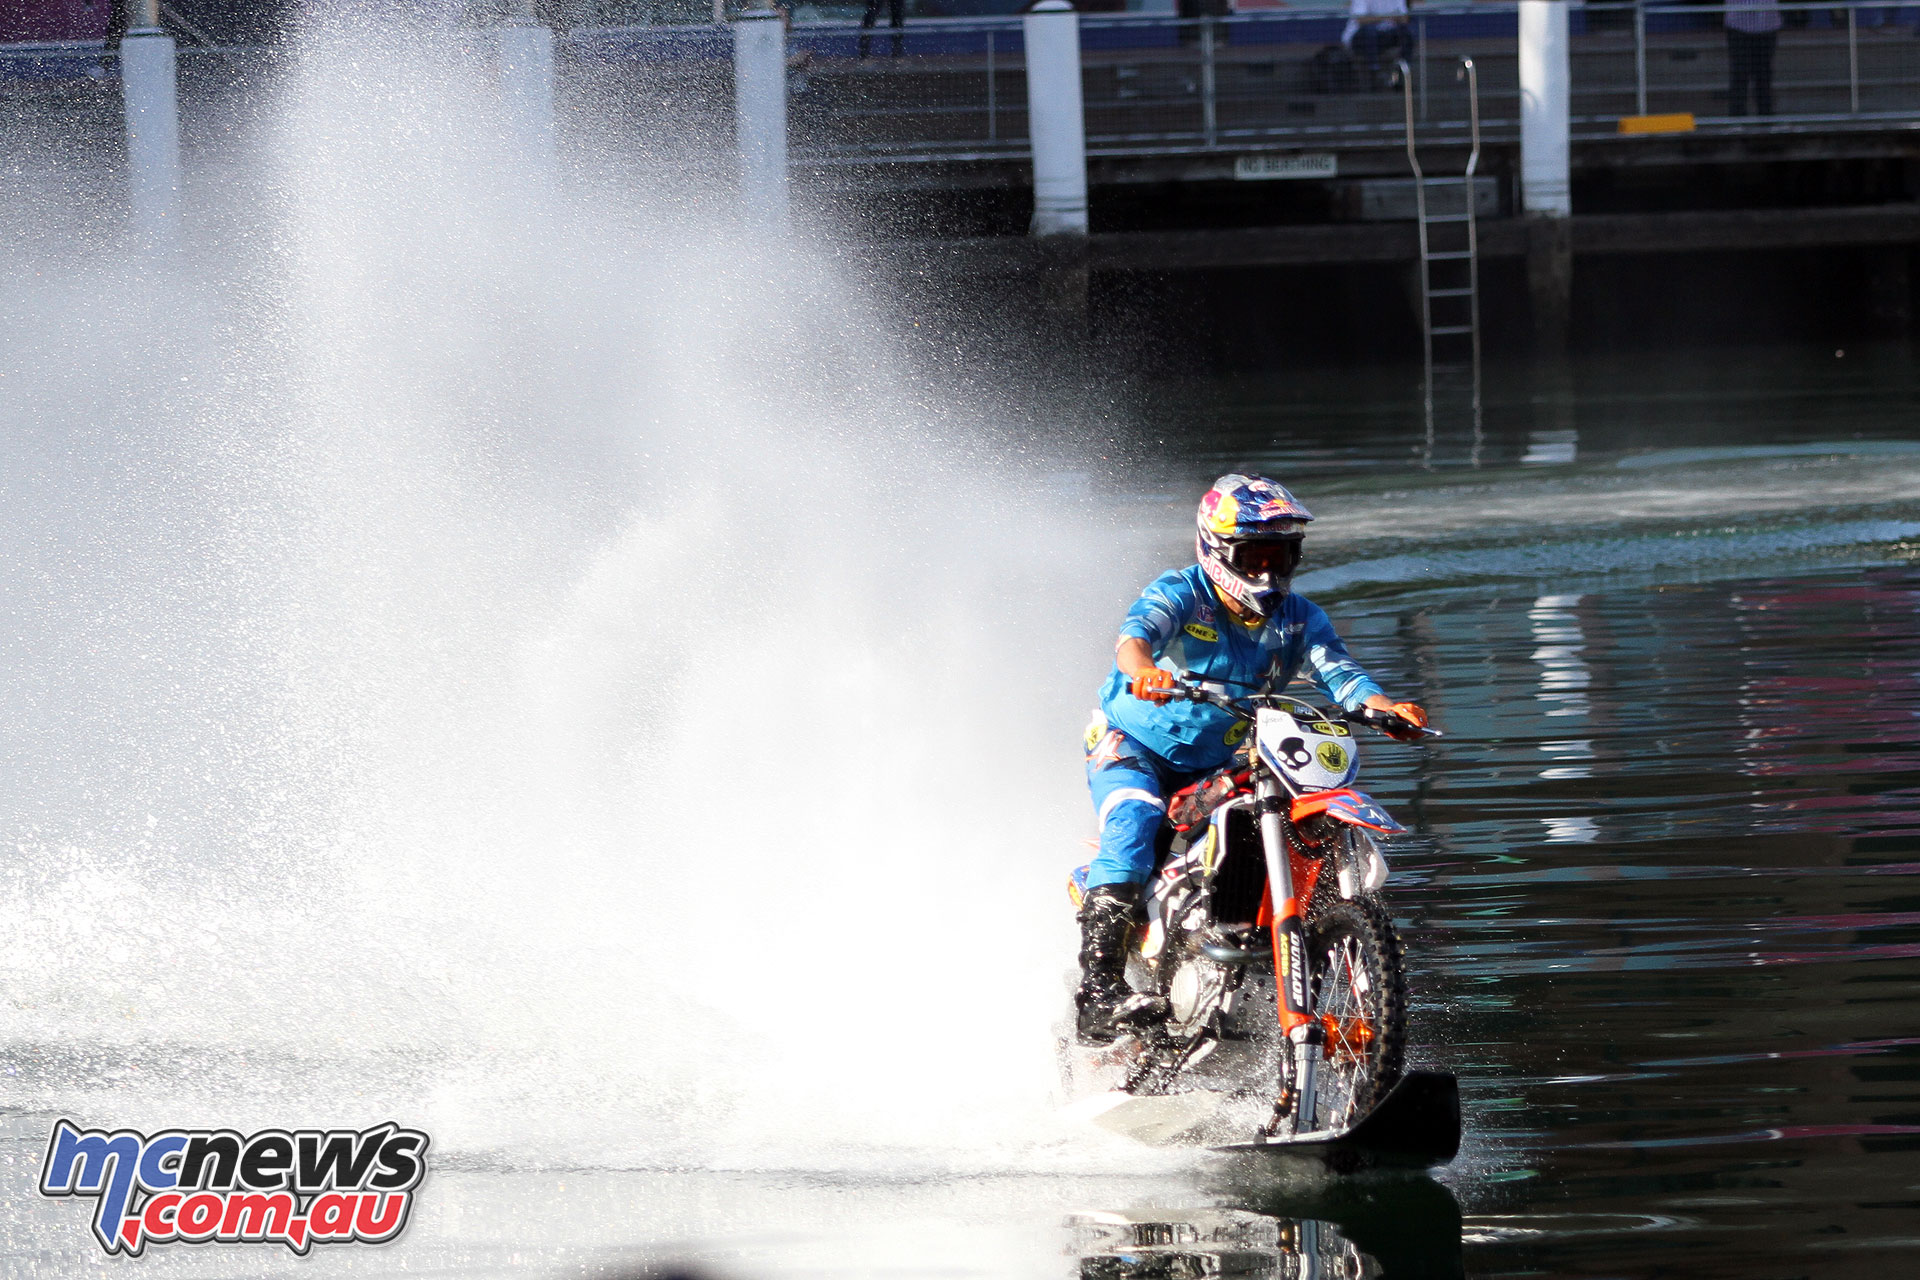 Robbie Maddison on his KTM waterbike - Darling Harbour